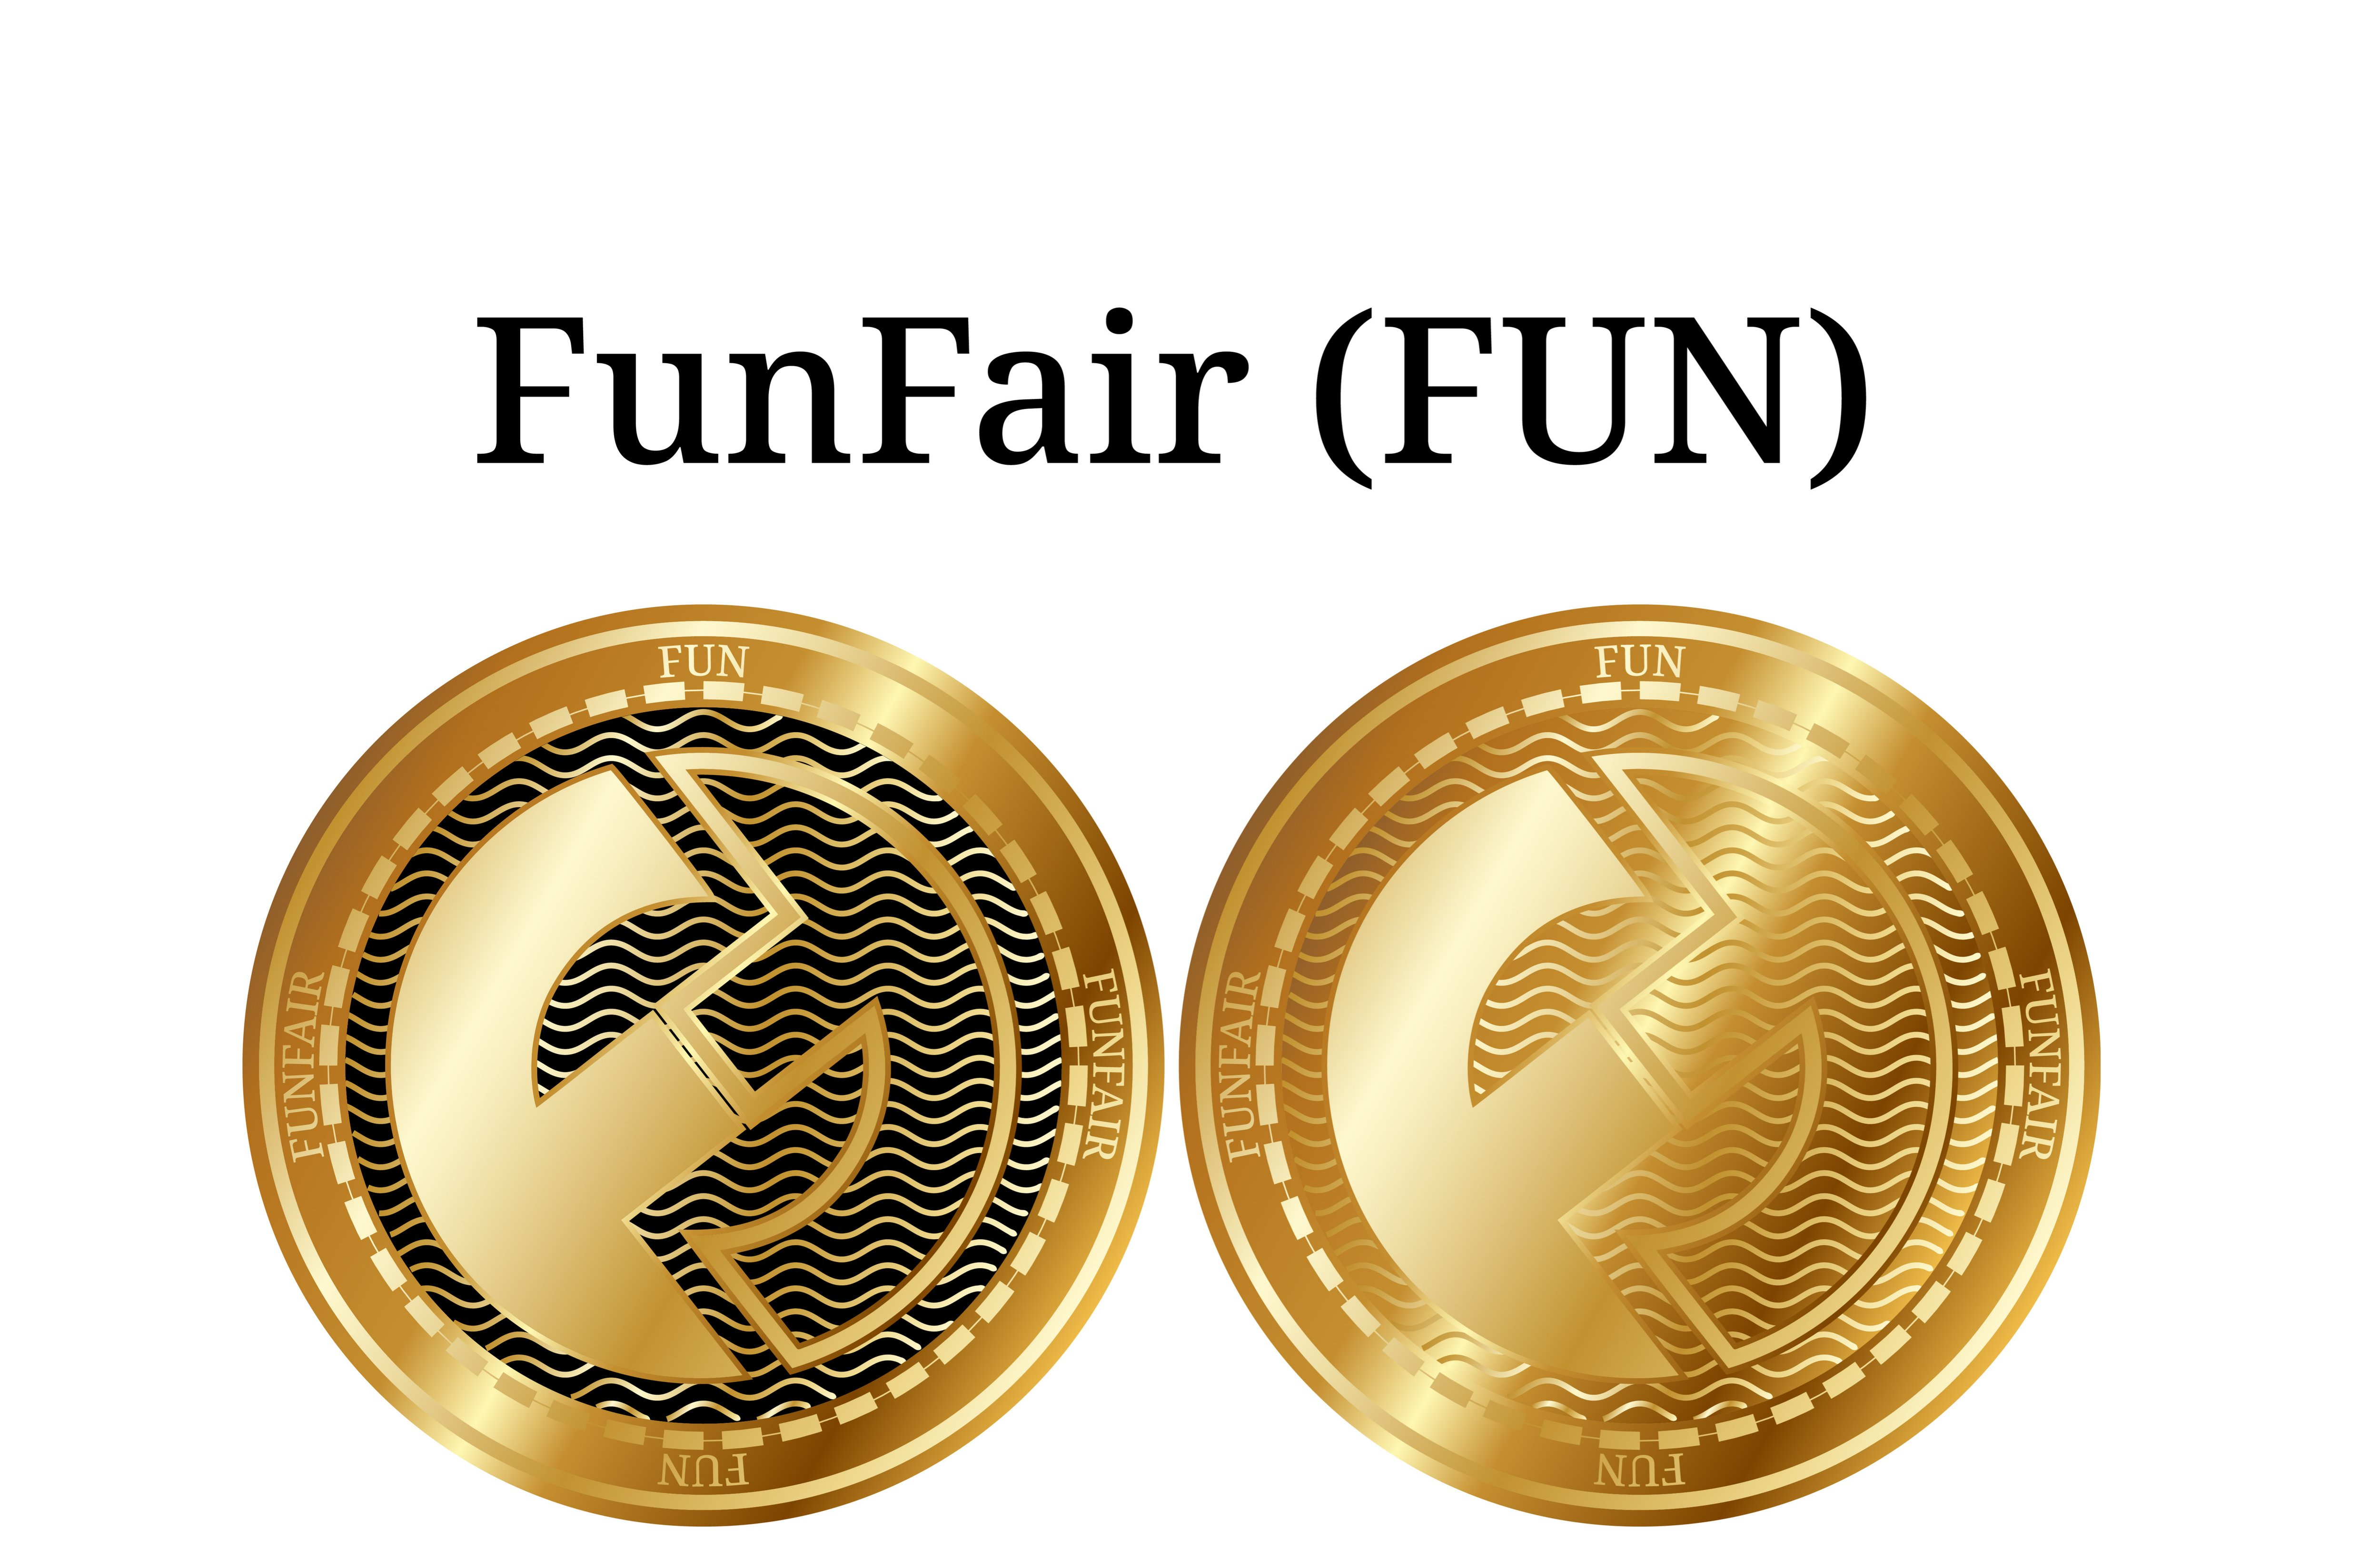 Funfair coin 4chan 2018 - Basic attention token inflation note